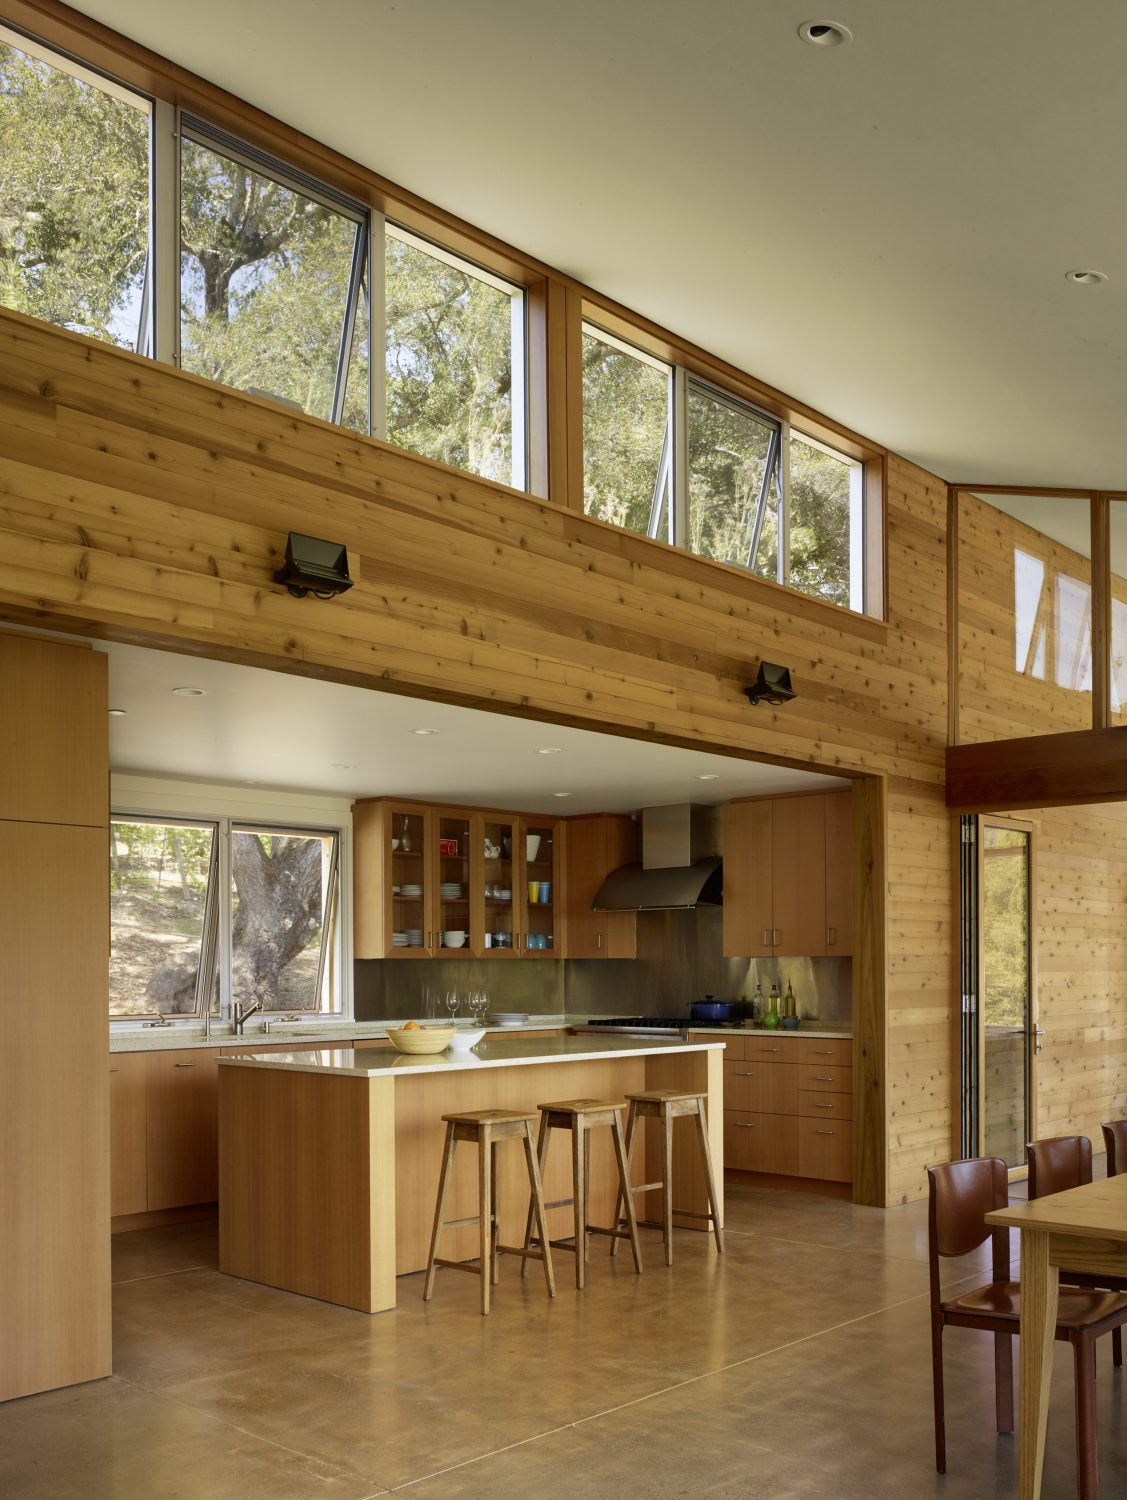 Cloverdale Residence by Turnbull Griffin Haesloop Architects